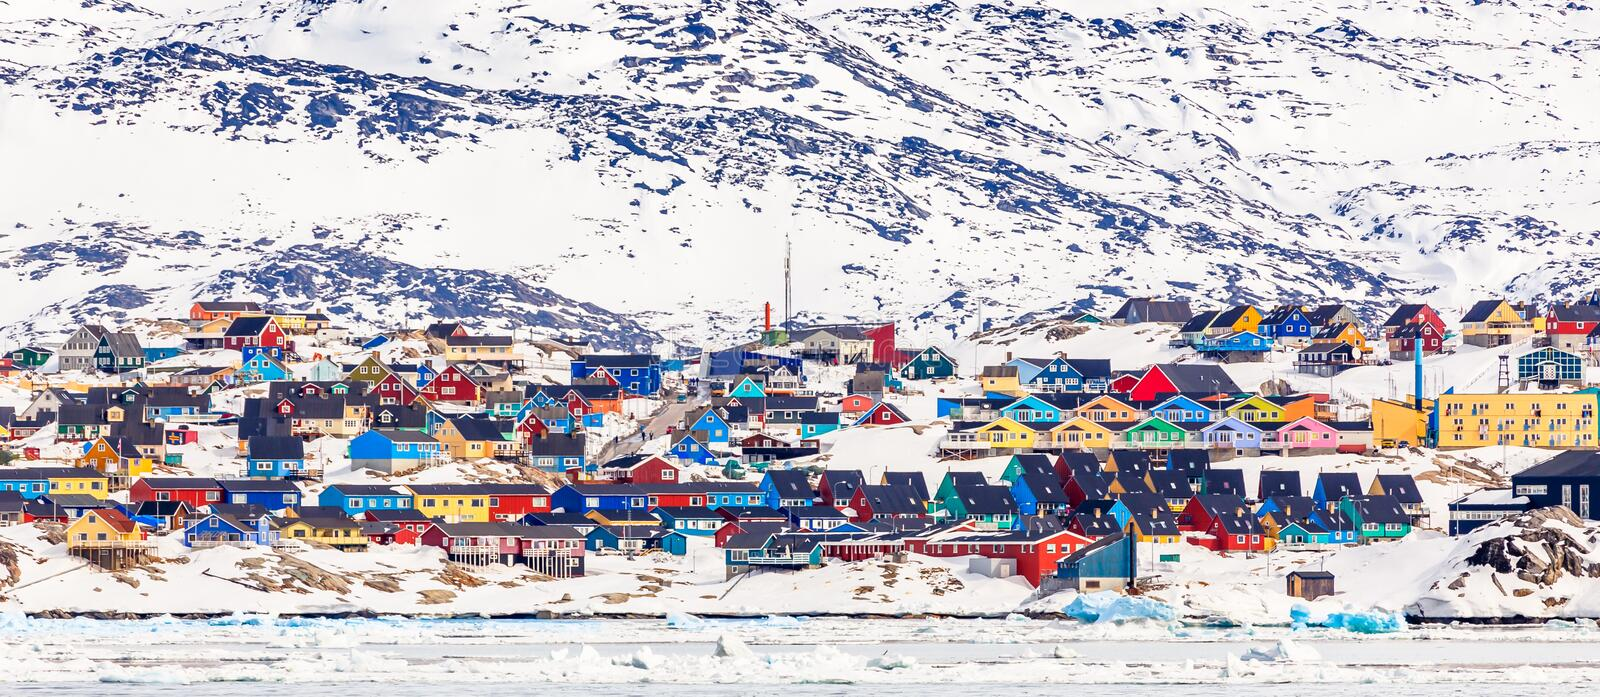 Arctic city center panorama with colorful Inuit houses on the rocky hills covered in snow with snow and mountain in the background. Ilulissat, Avannaata royalty free stock image